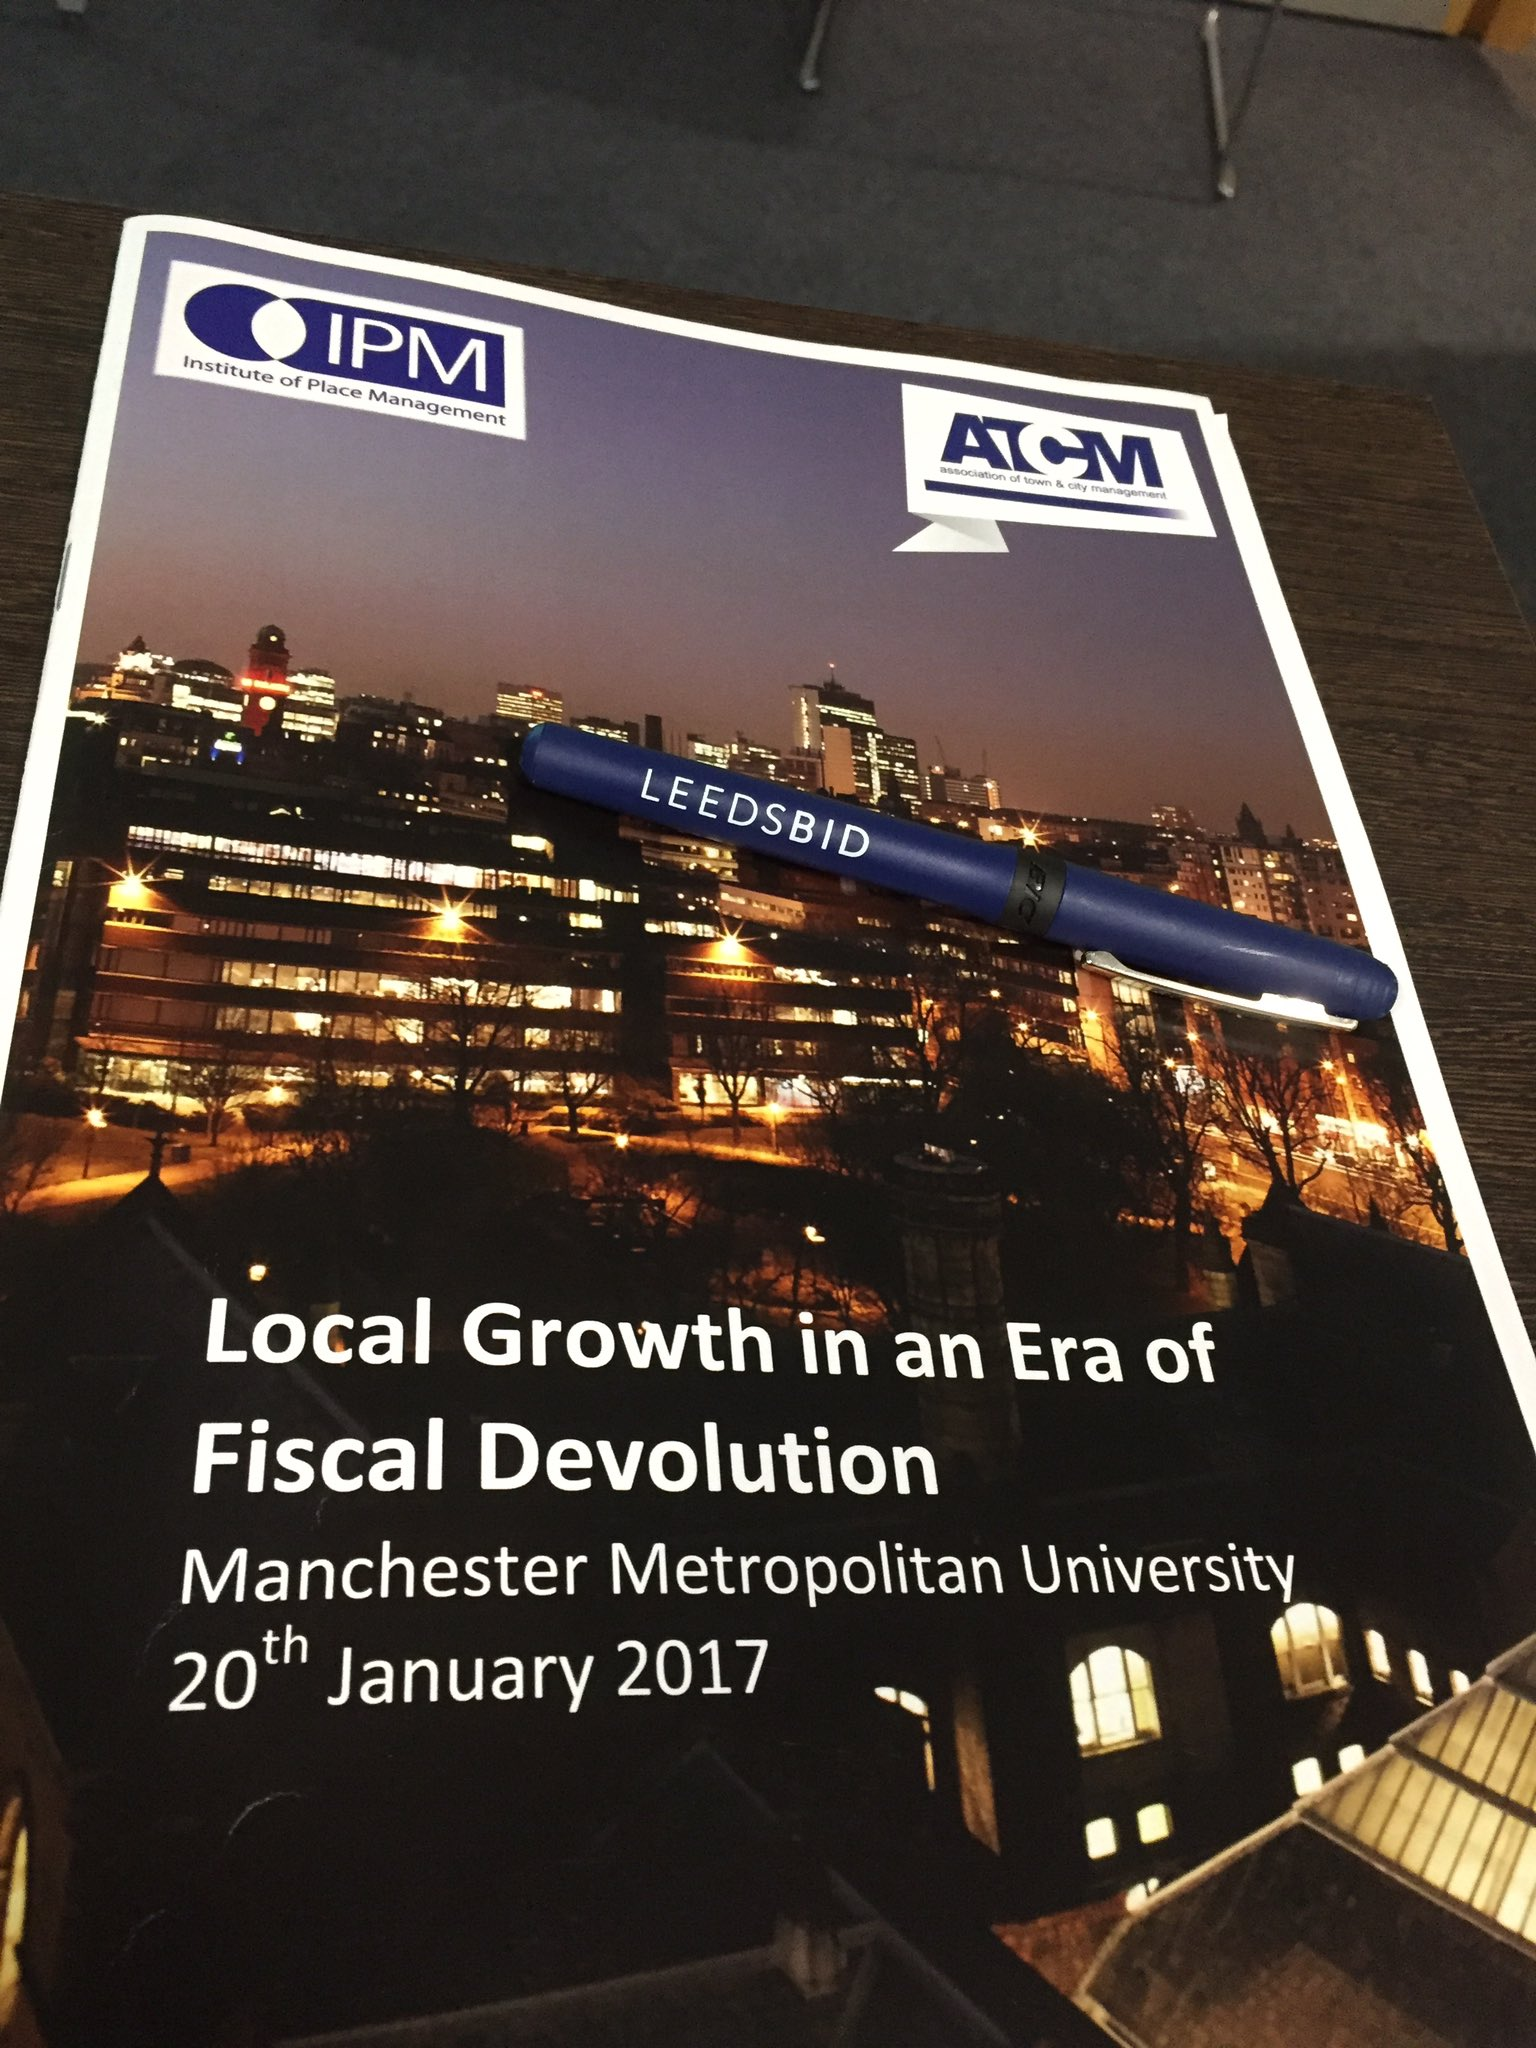 Great insight into new bill on 100% business rate retention from Nick Cooper at ATCM event @ATCMUK @LeedsBID https://t.co/72HBNkUD8i